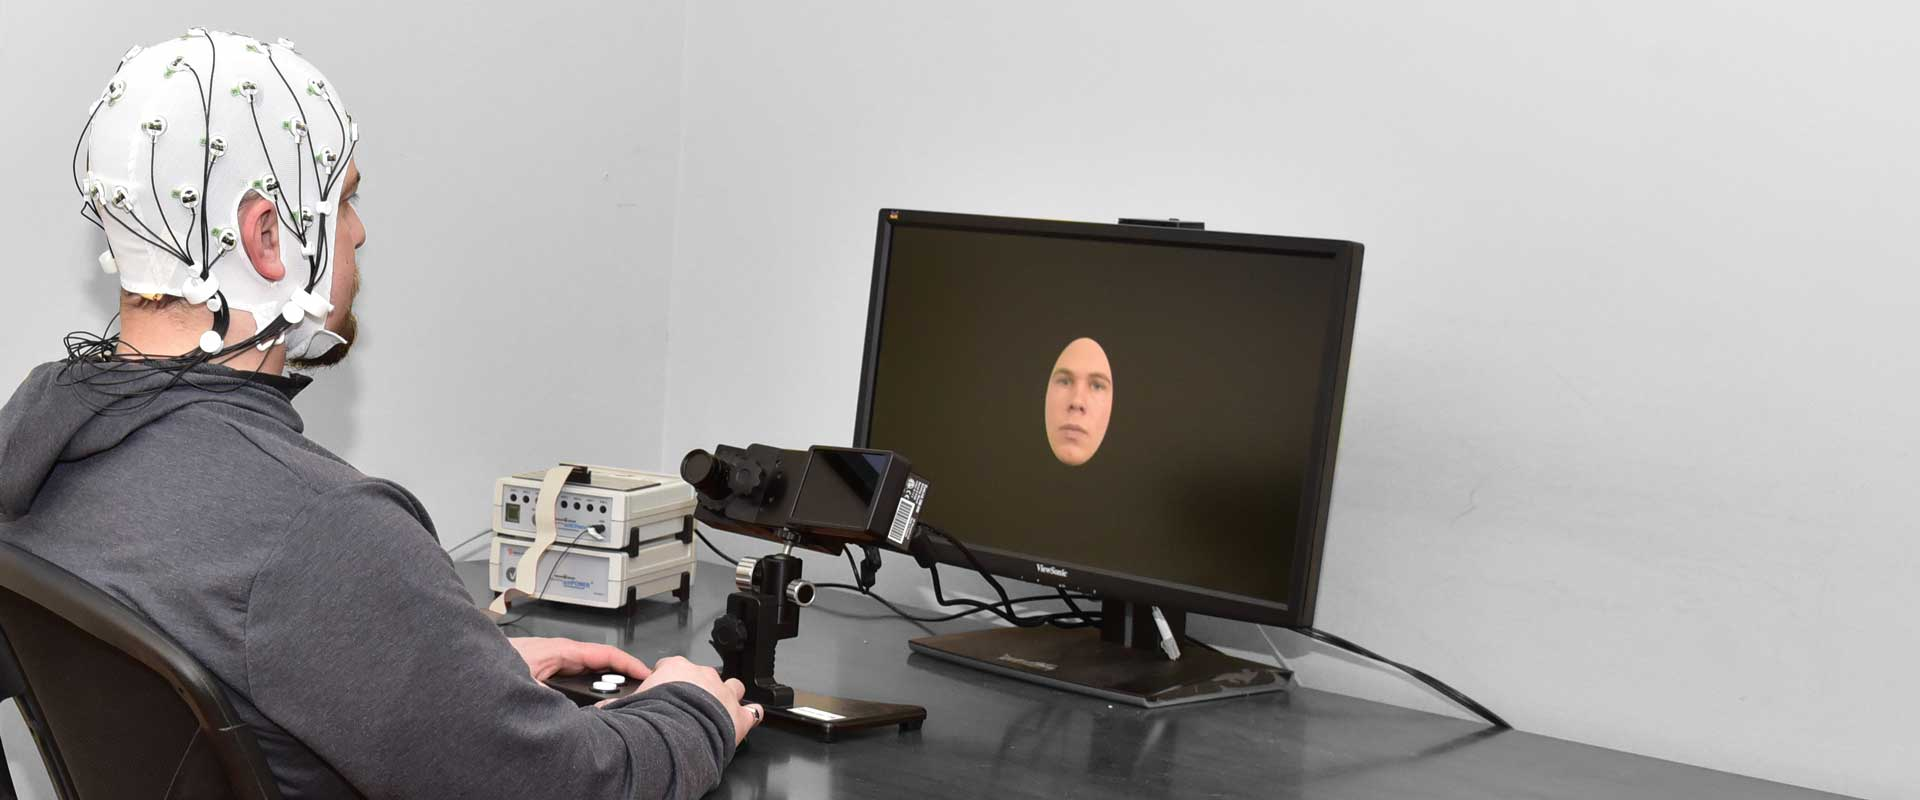 Eye Tracking and EEG - SR Research